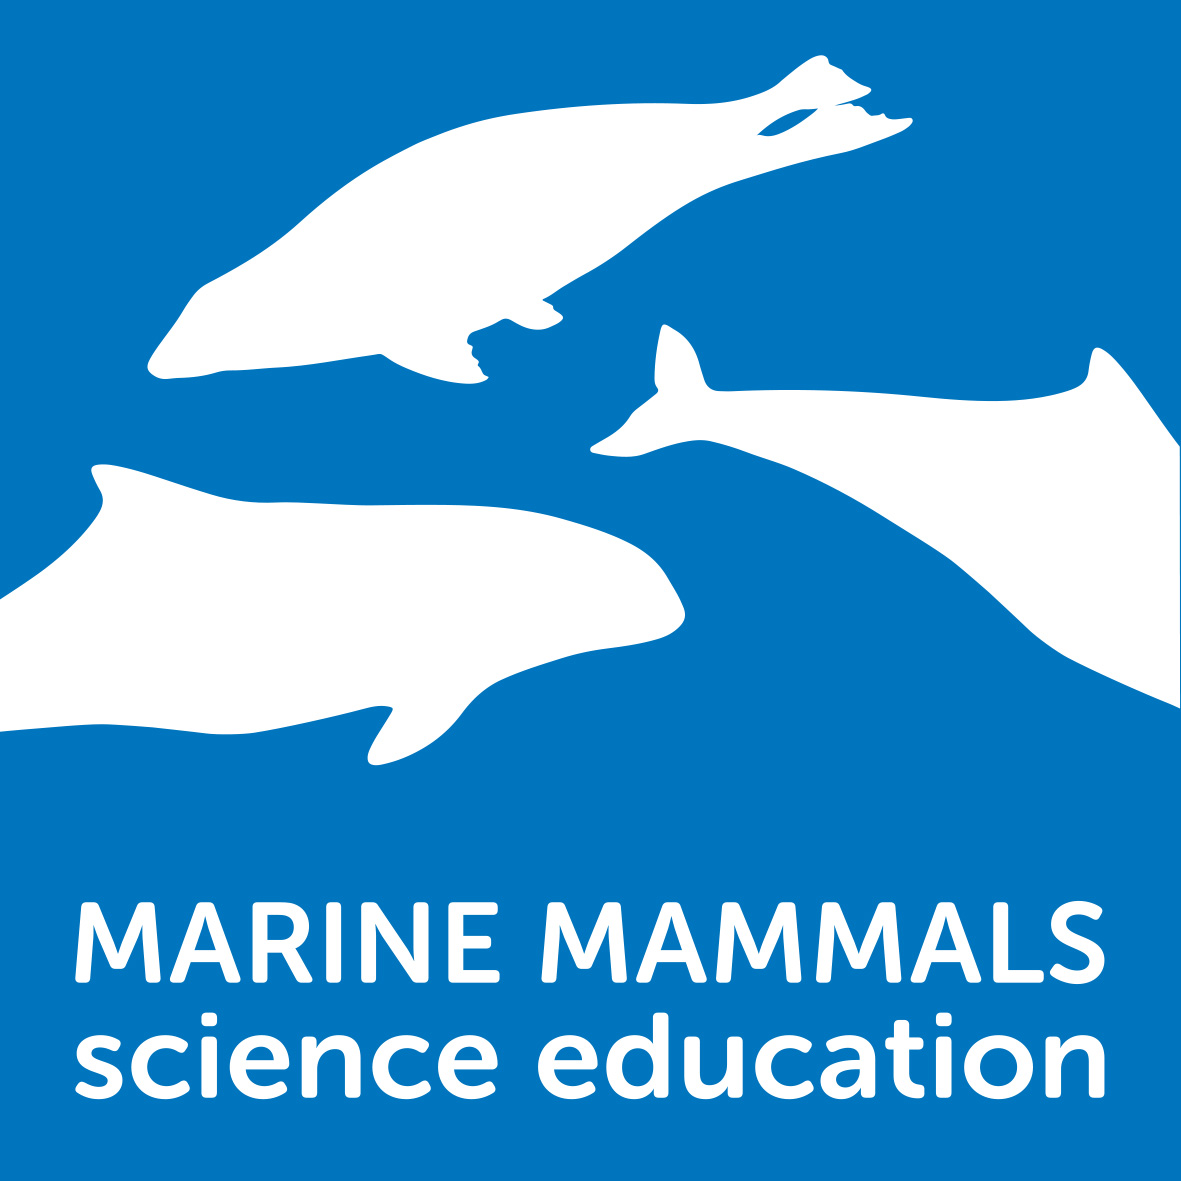 Marine Mammals - Science education